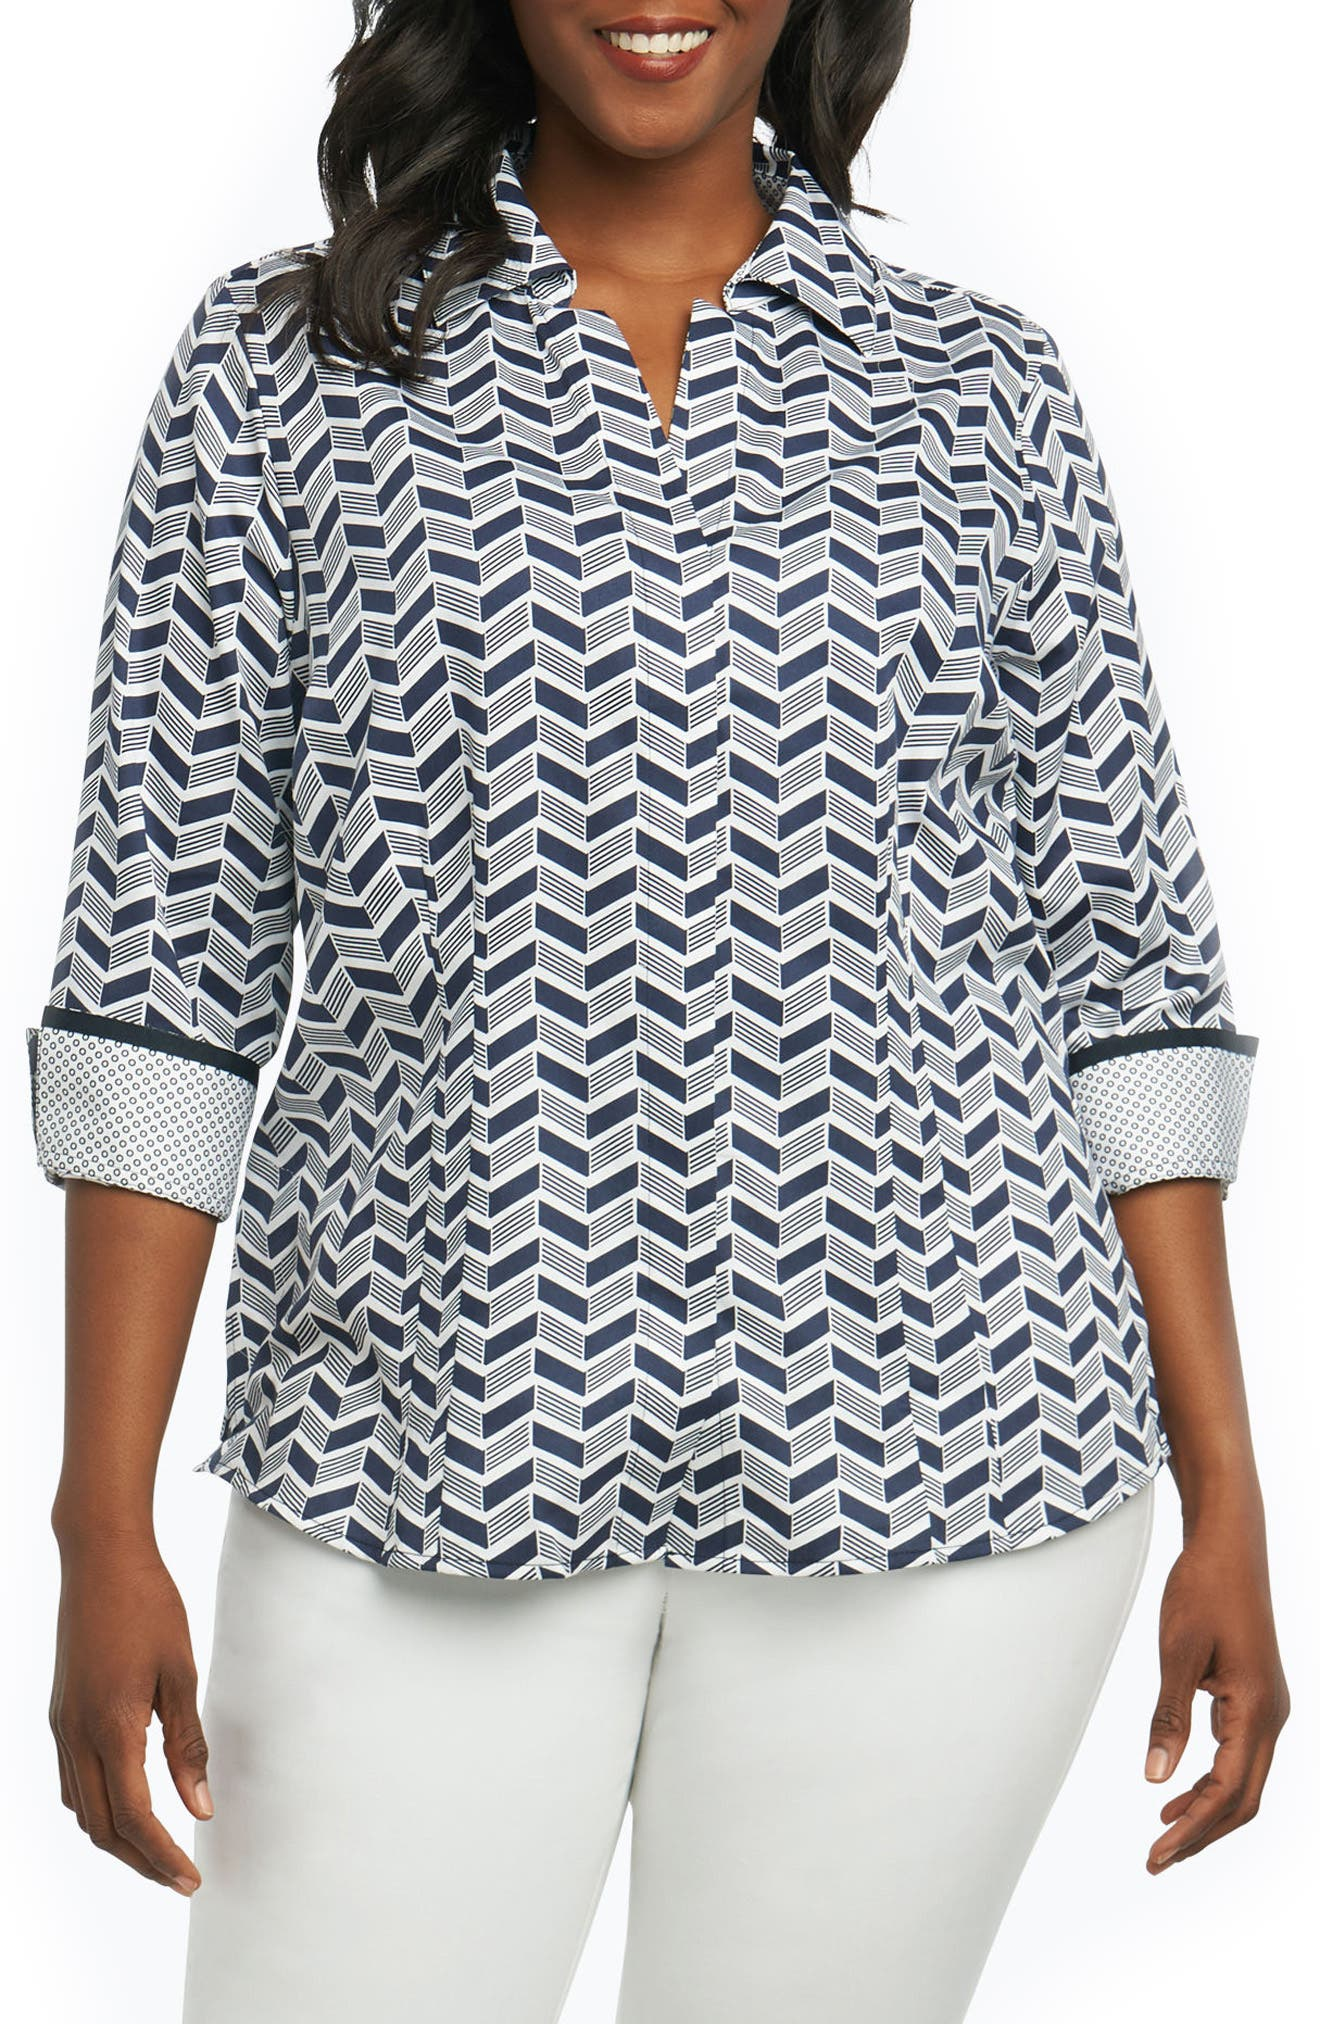 Taylor Chevron Non Iron Cotton Shirt,                             Main thumbnail 1, color,                             415